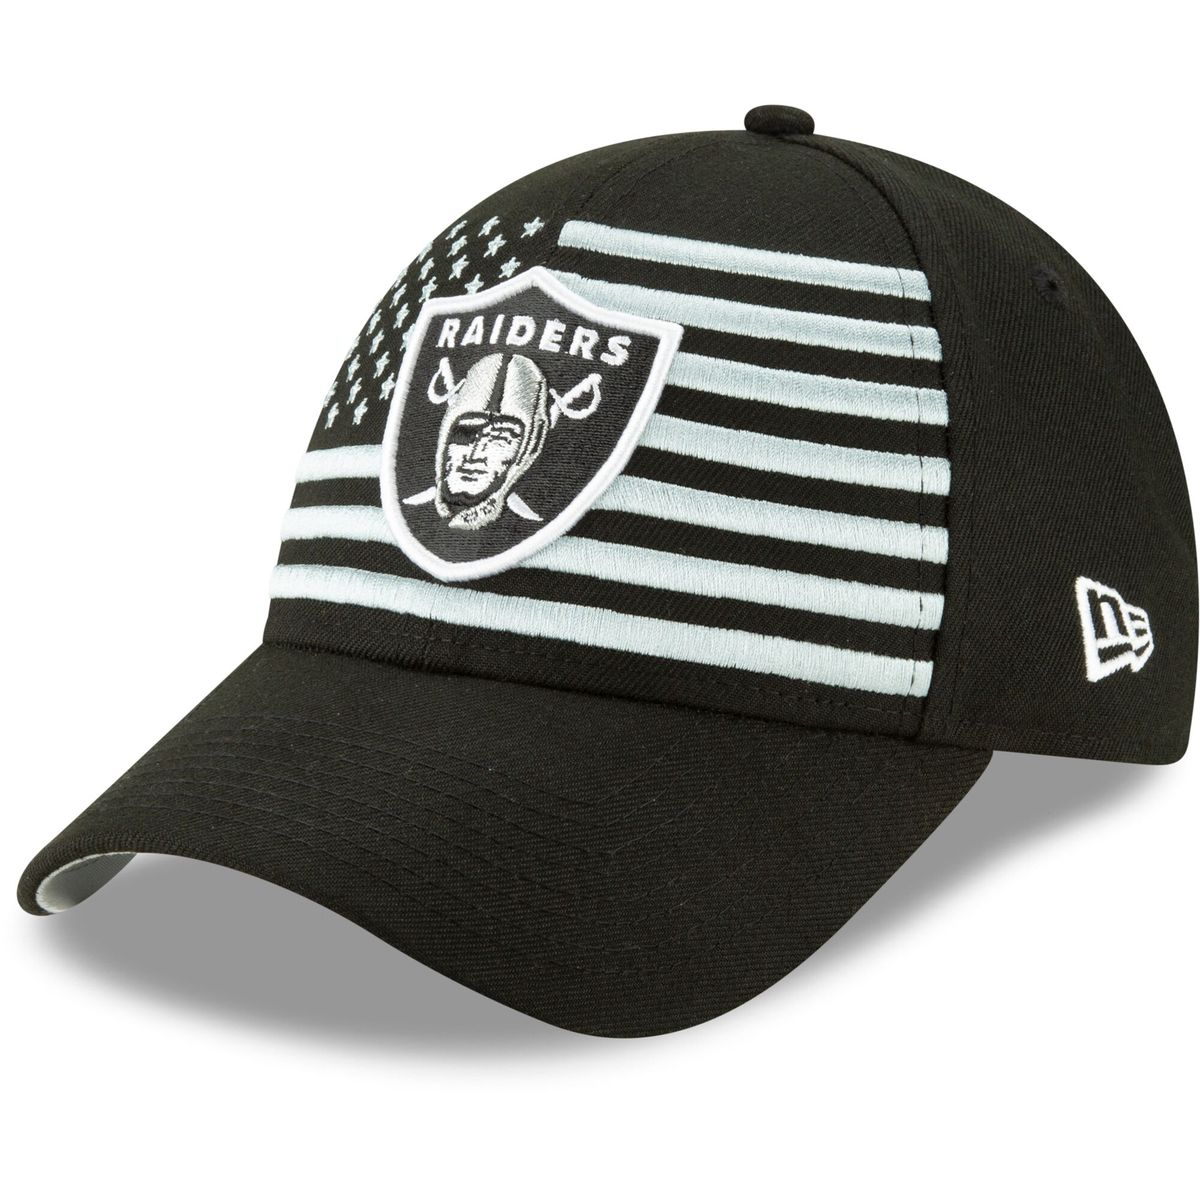 6dcacb12 Raiders NFL Draft hats are here and you are going to want one ...